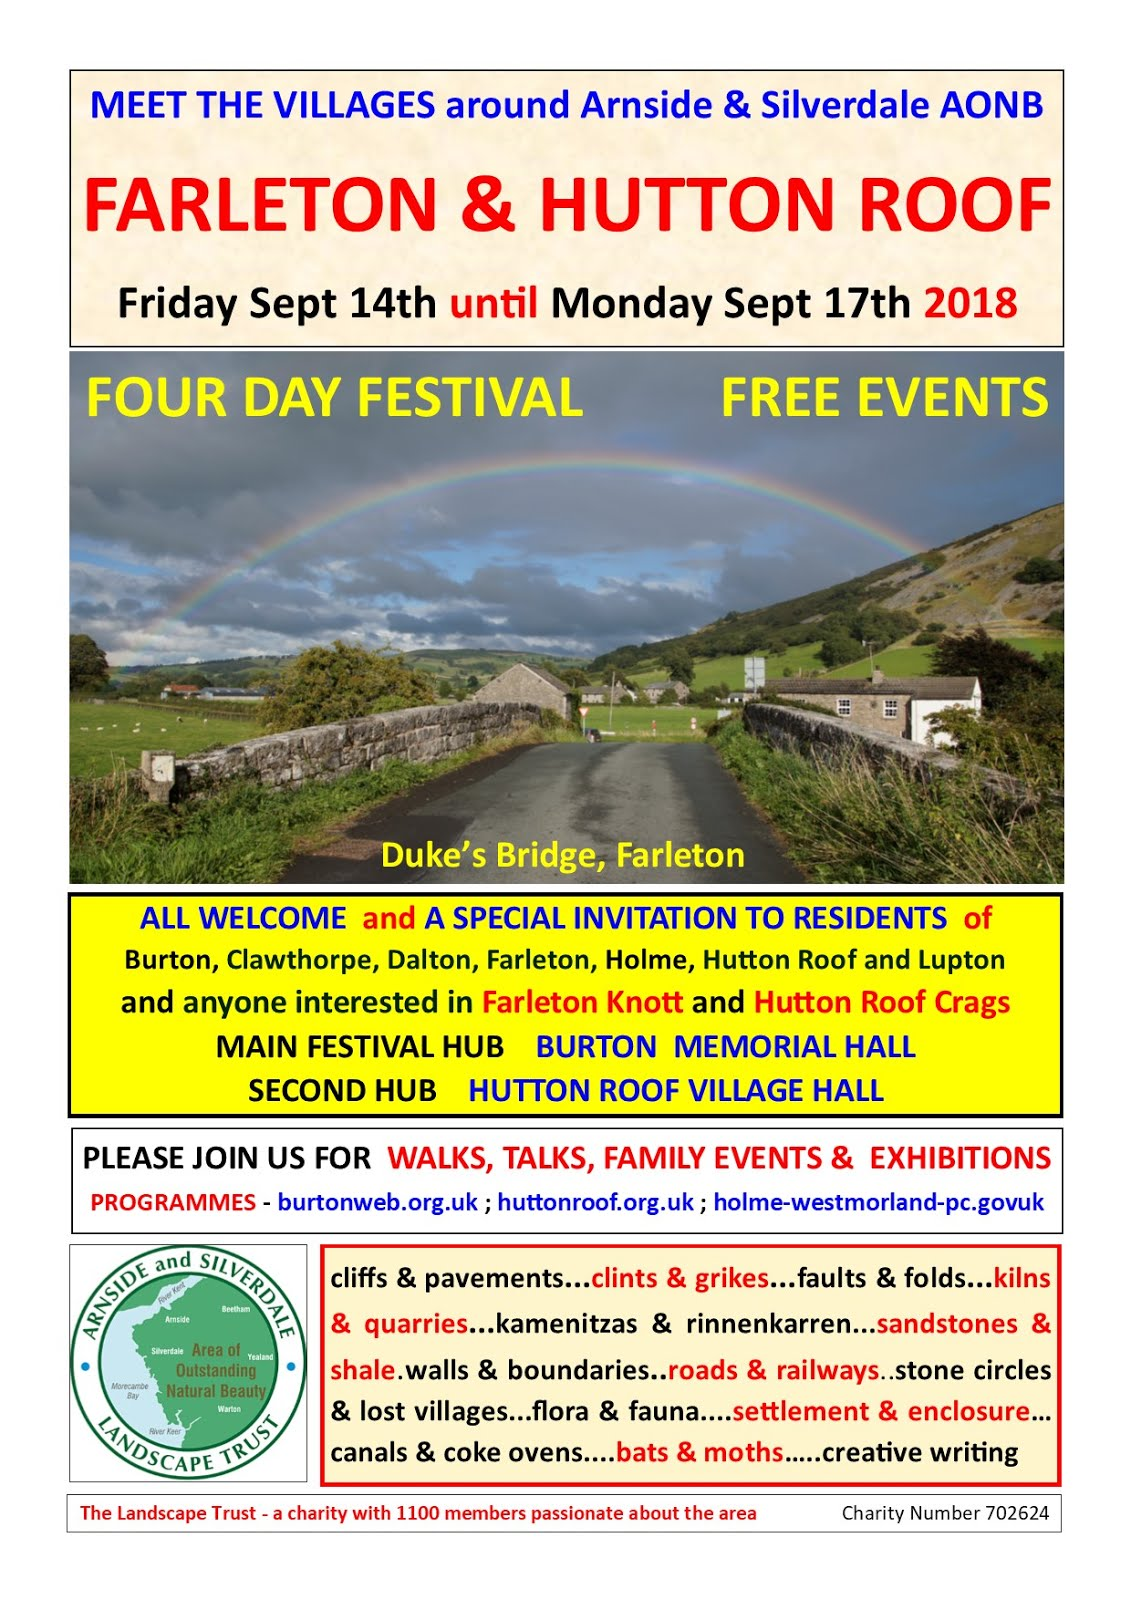 Farleton and Hutton Roof Festival